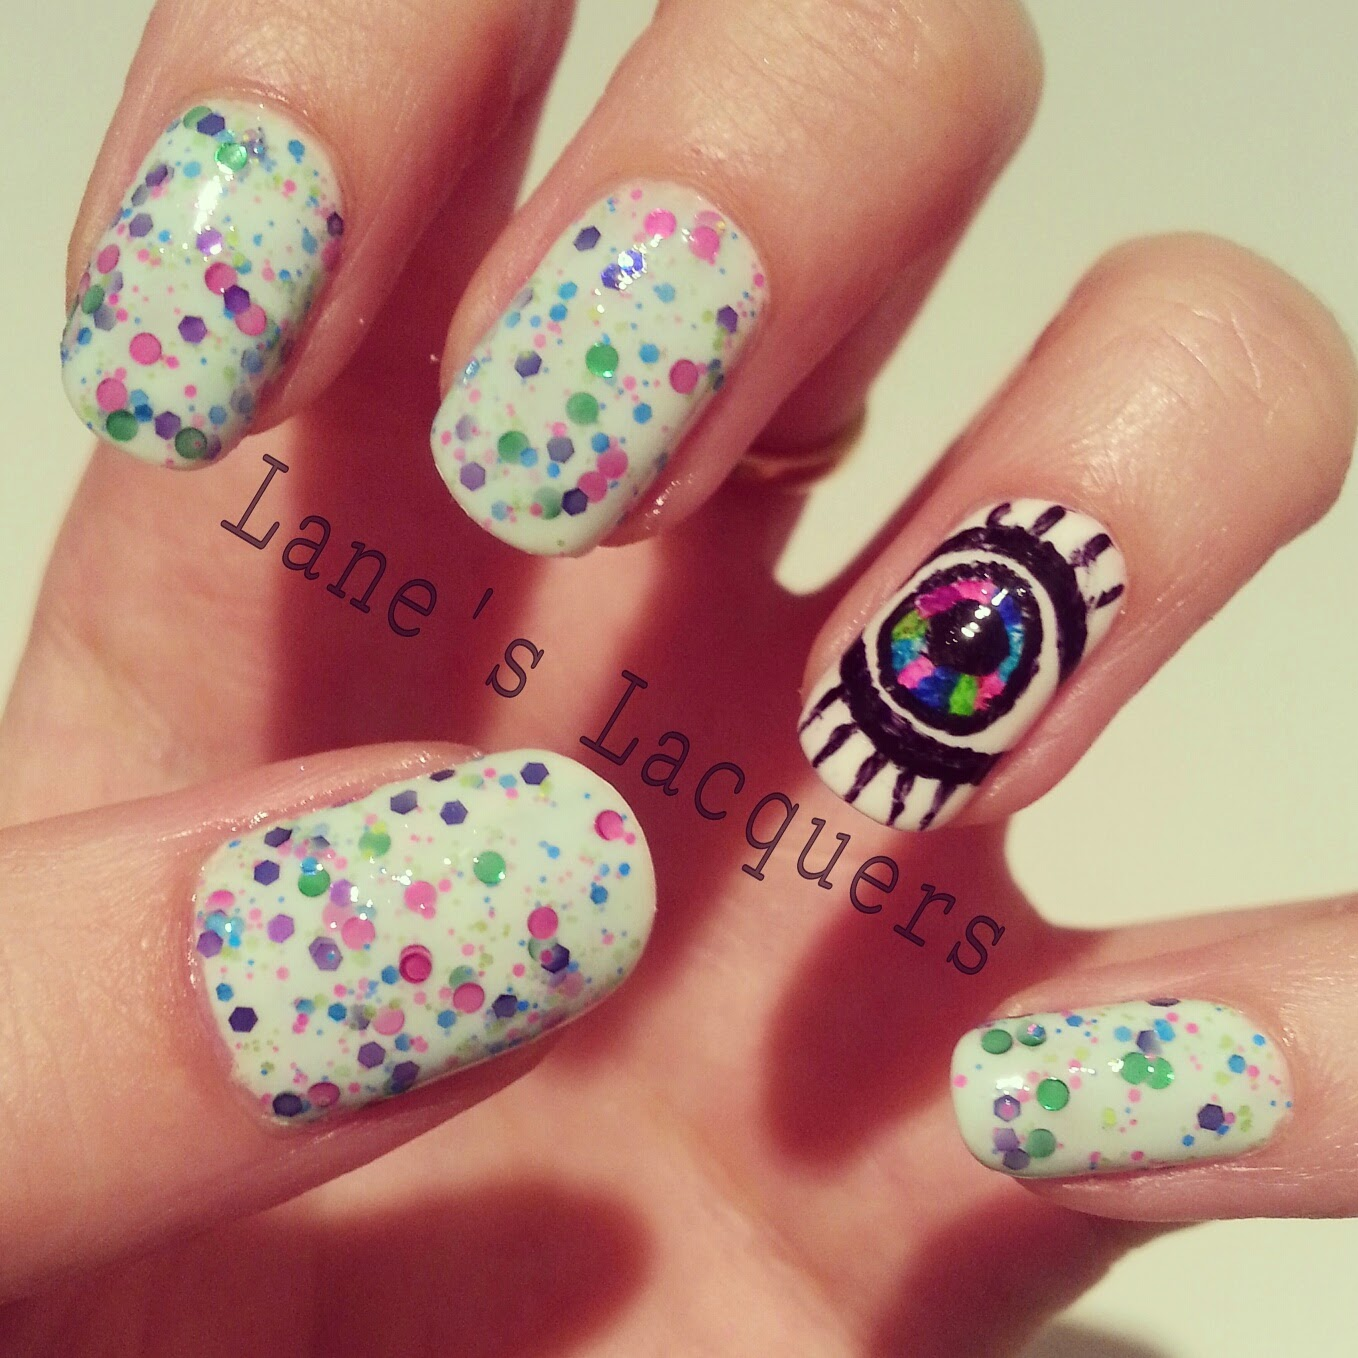 glam-polish-kaleidescope-eyes-nail-art